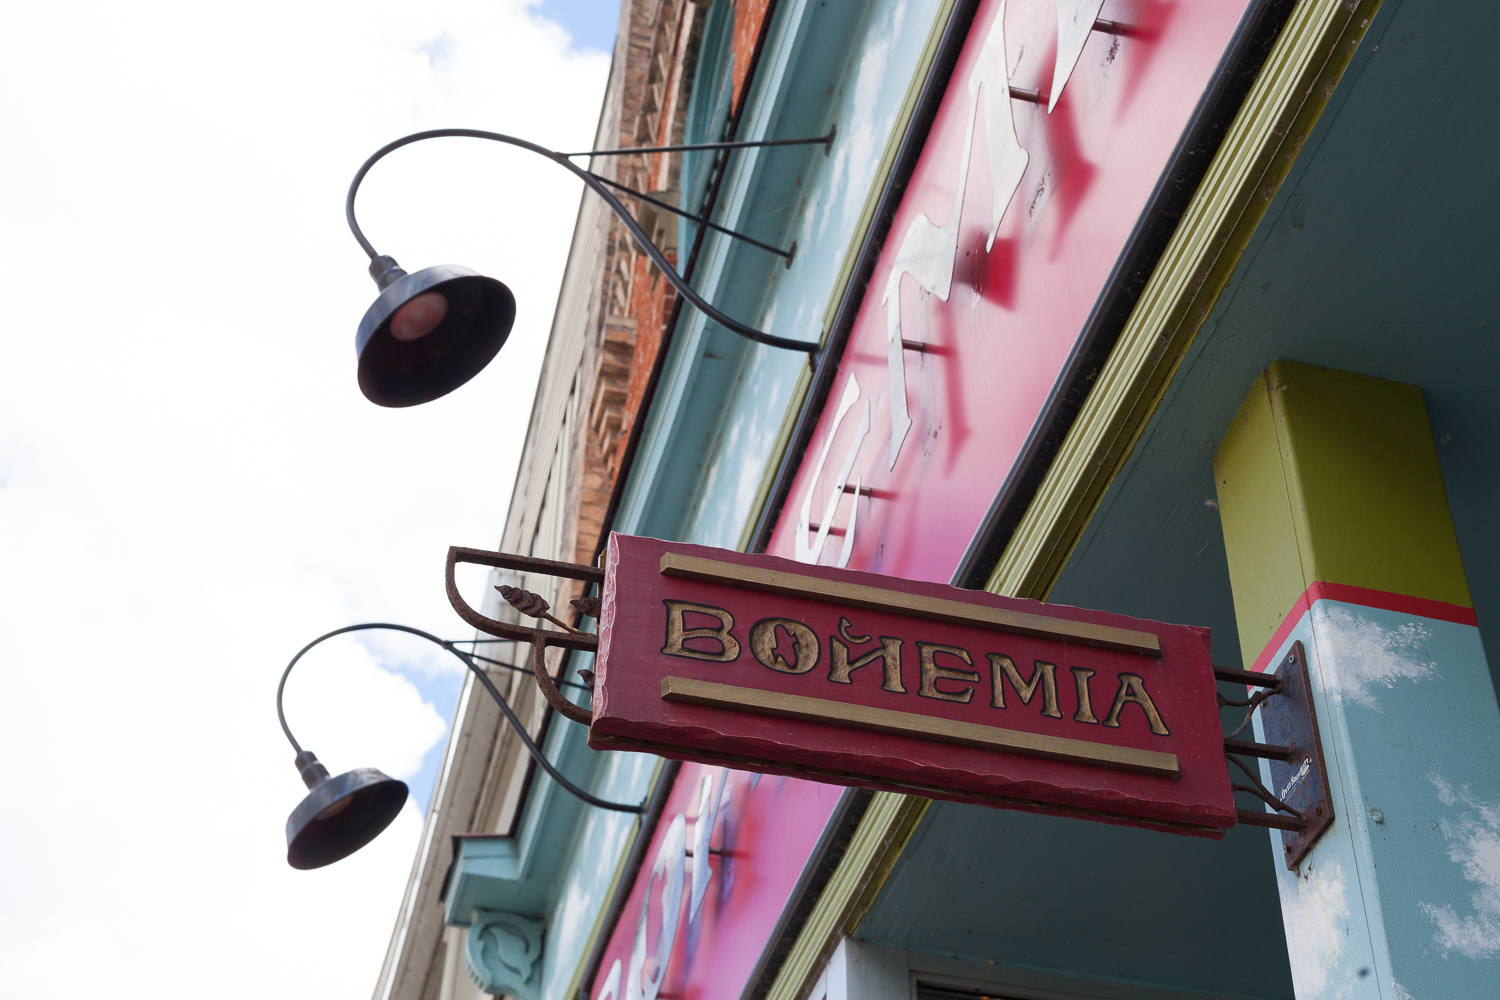 Bohemia Cafe downtown Barrie